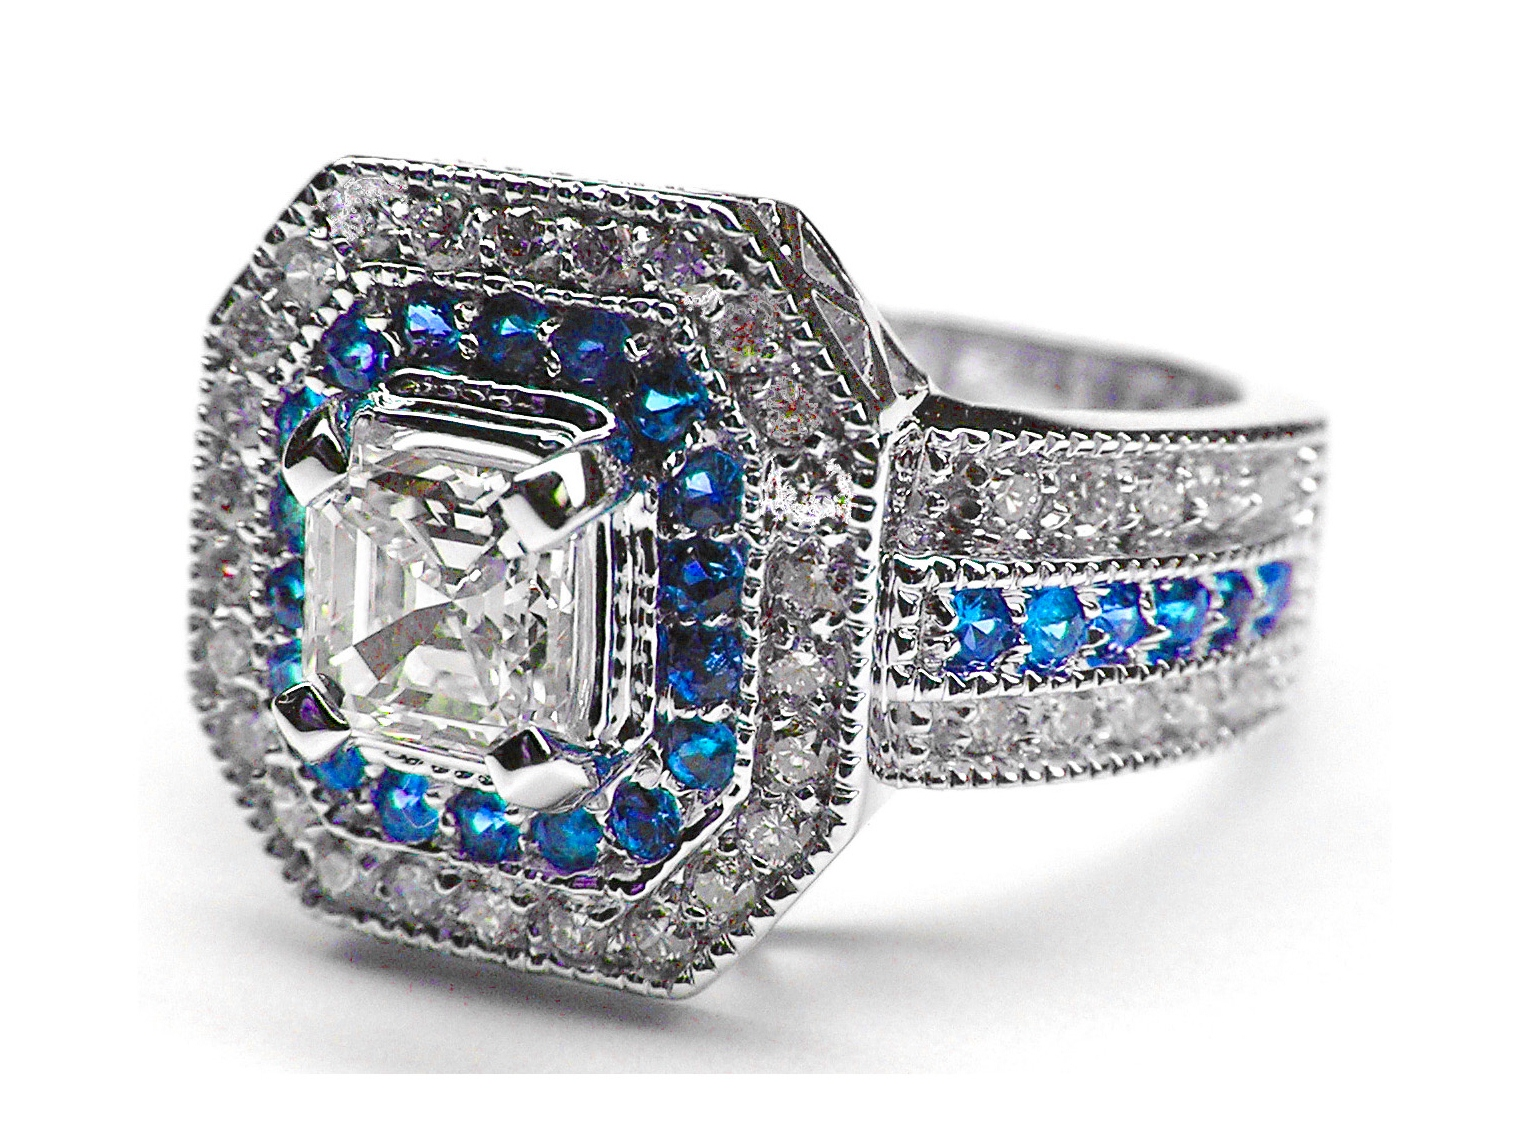 deco cz dp amazon sapphire asscher ring sapphires synthetic art blue cut com baguette silver sterling